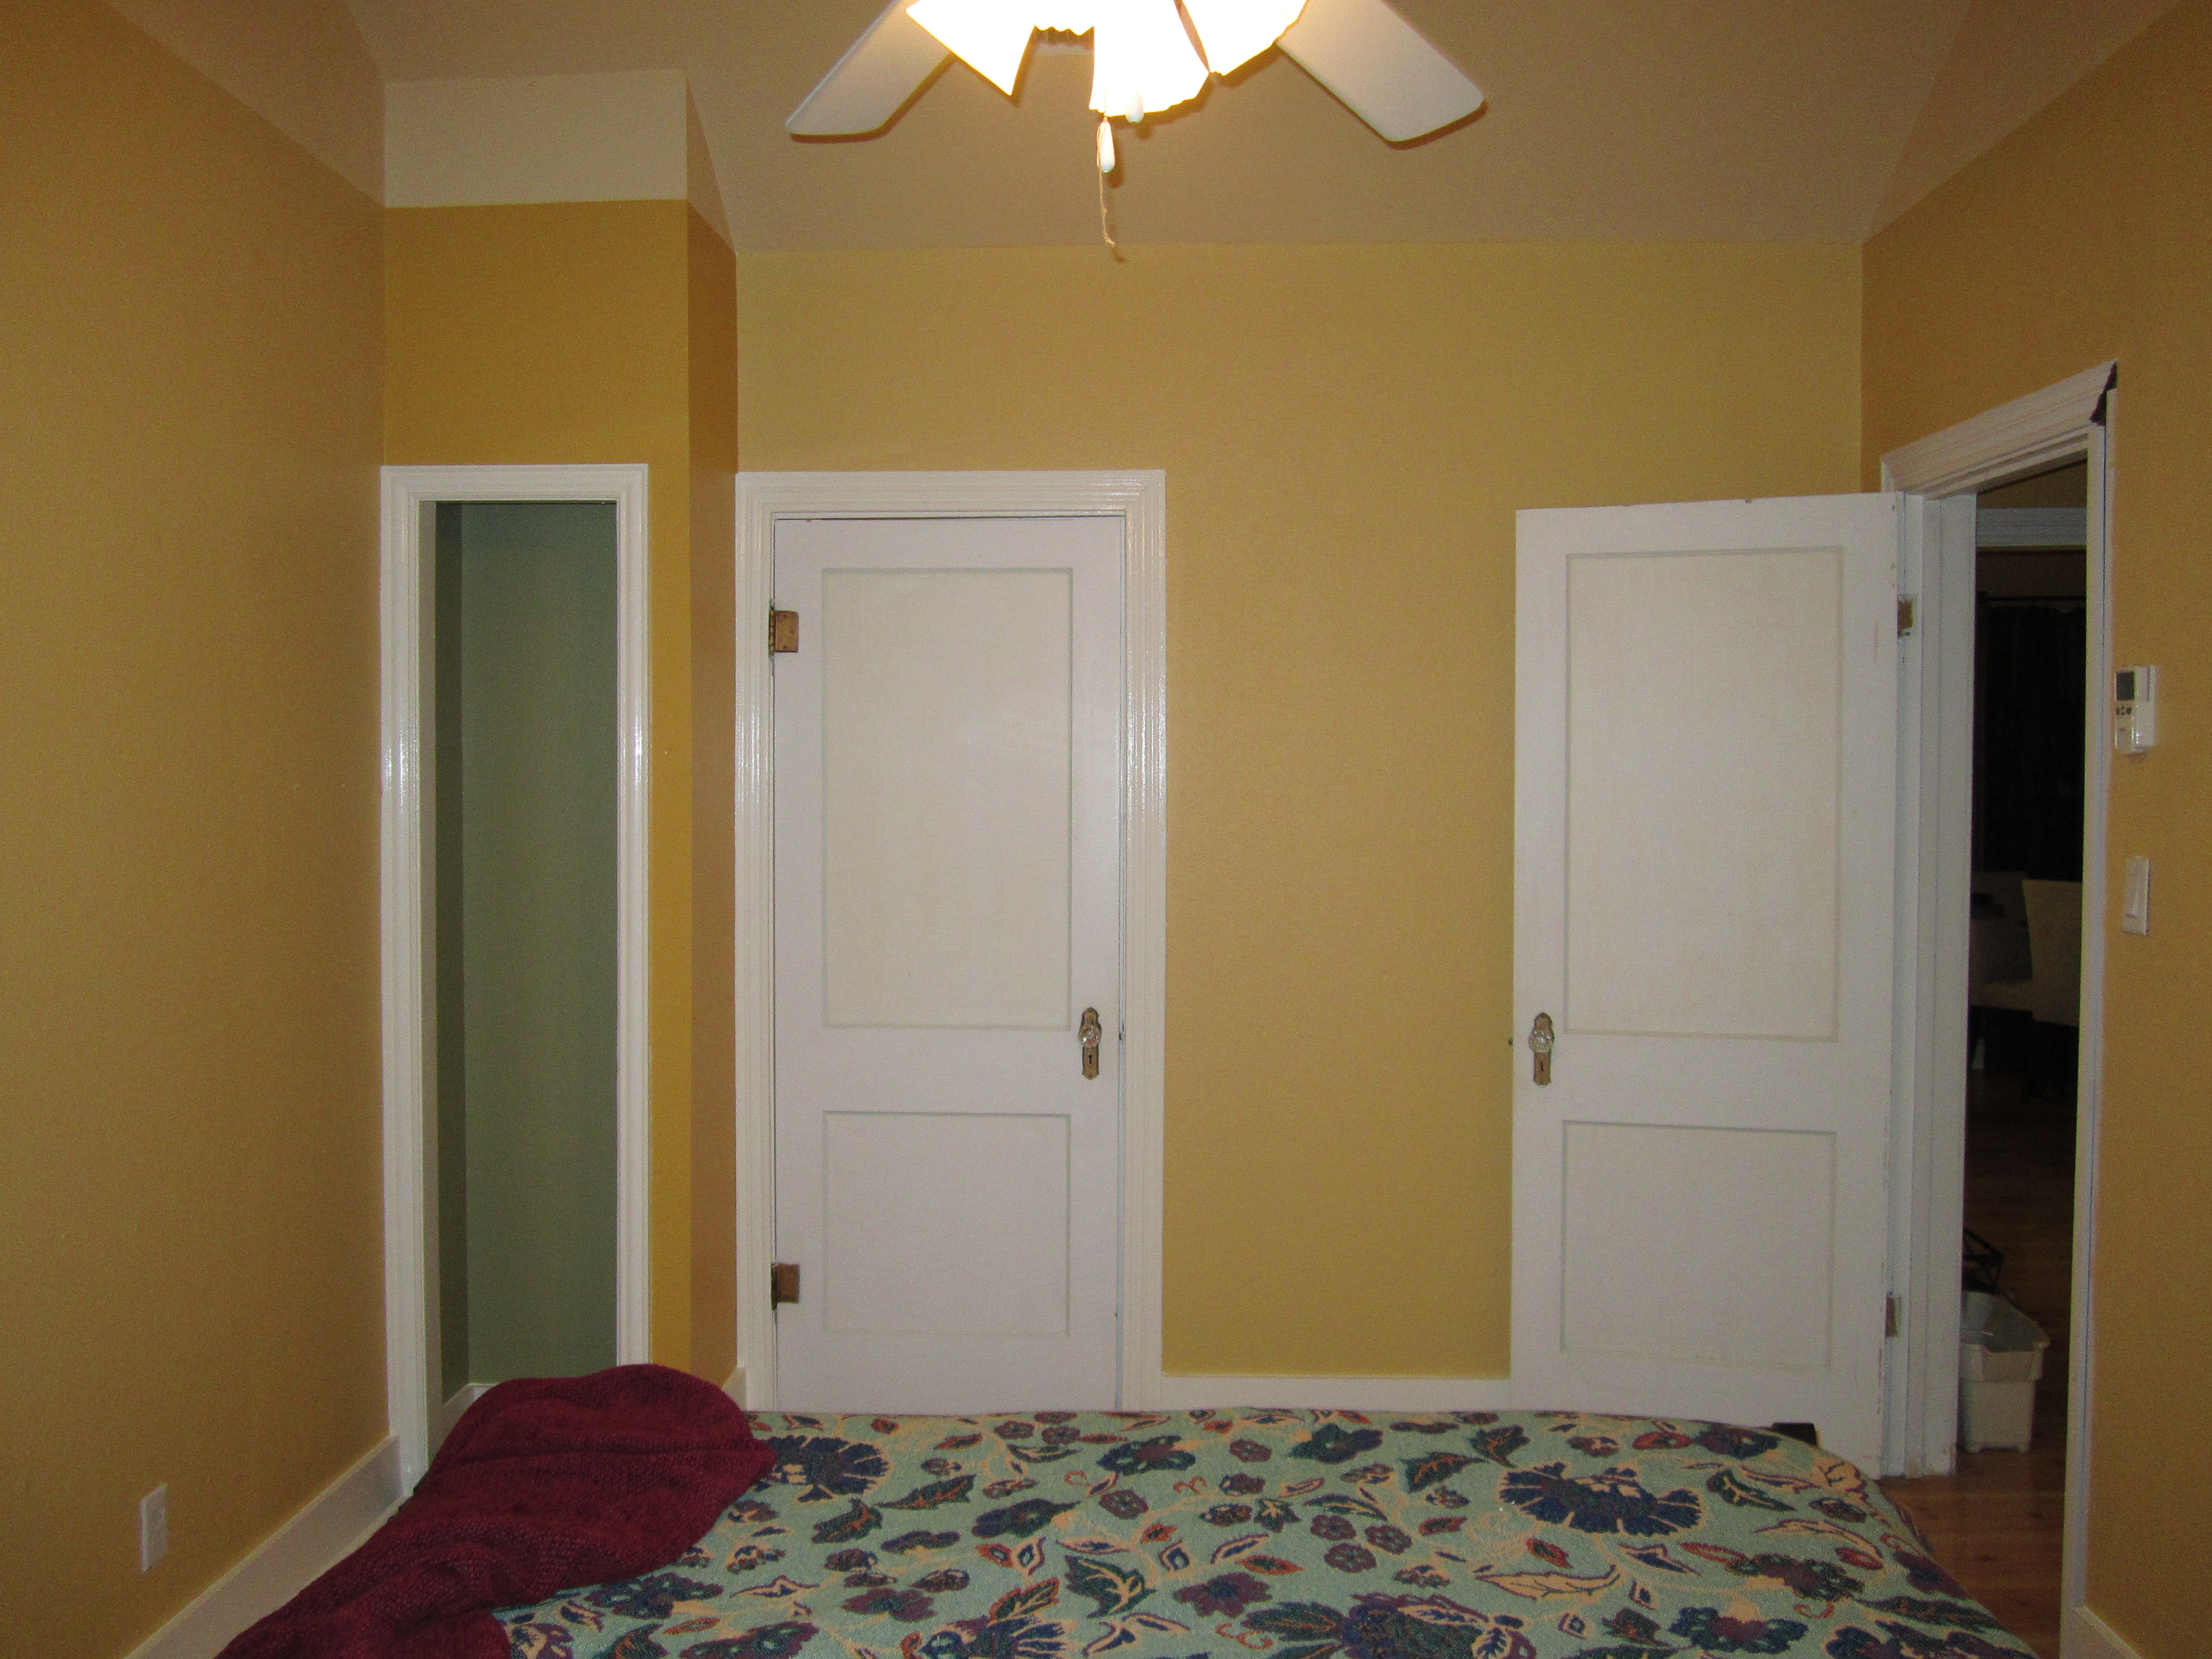 Bedroom after painting - the closet wall